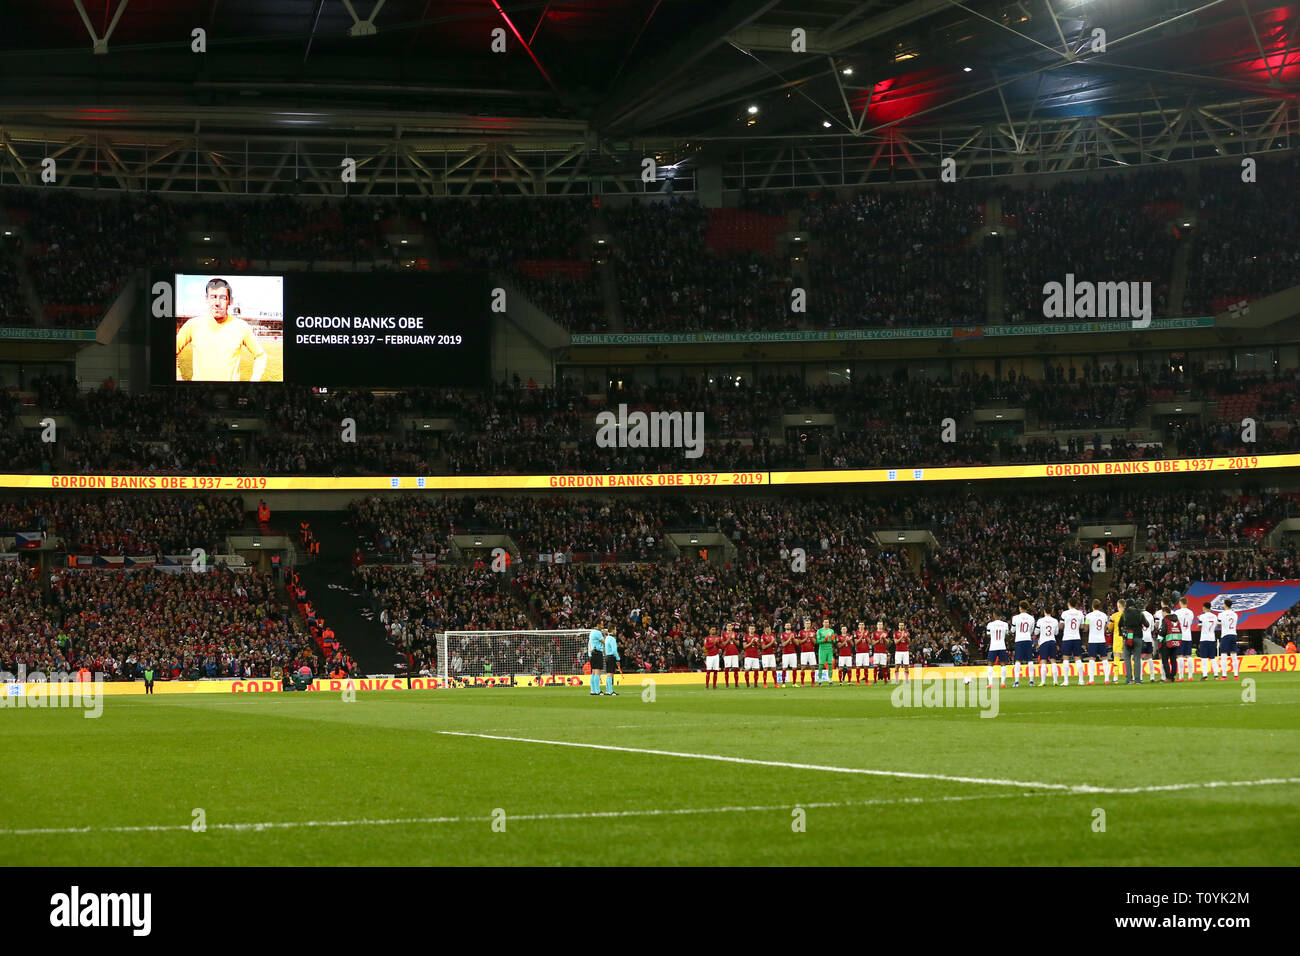 London, UK. 22nd Mar 2019. England tribute to Gordon Banks during the UEFA European Championship Group A Qualifying match between England and Czech Republic at Wembley Stadium, London on Saturday 23rd March 2019. (Credit: Leila Coker | MI News) Credit: MI News & Sport /Alamy Live News - Stock Image